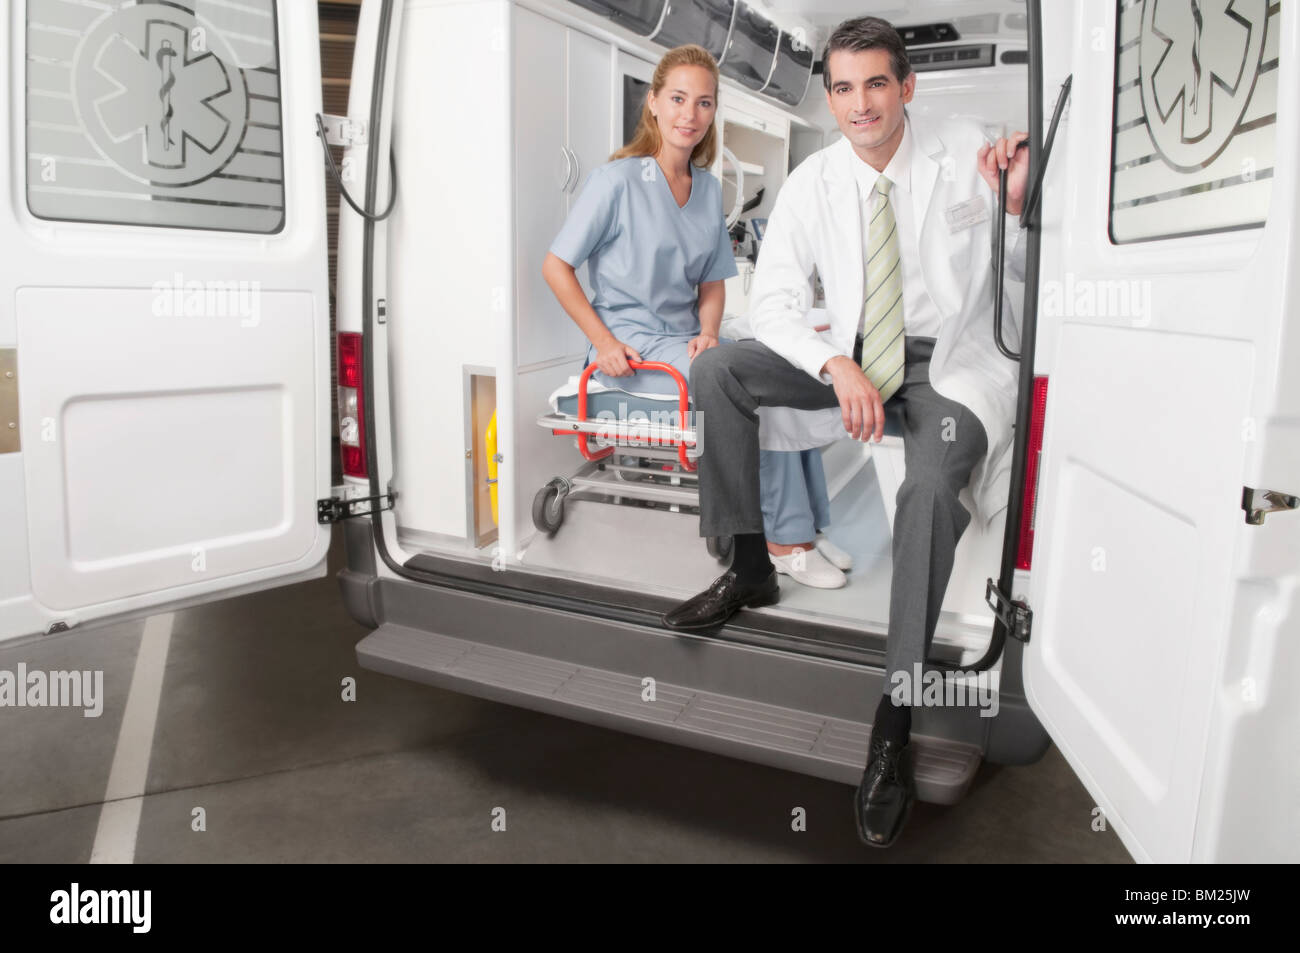 Doctor with a female nurse in an ambulance - Stock Image